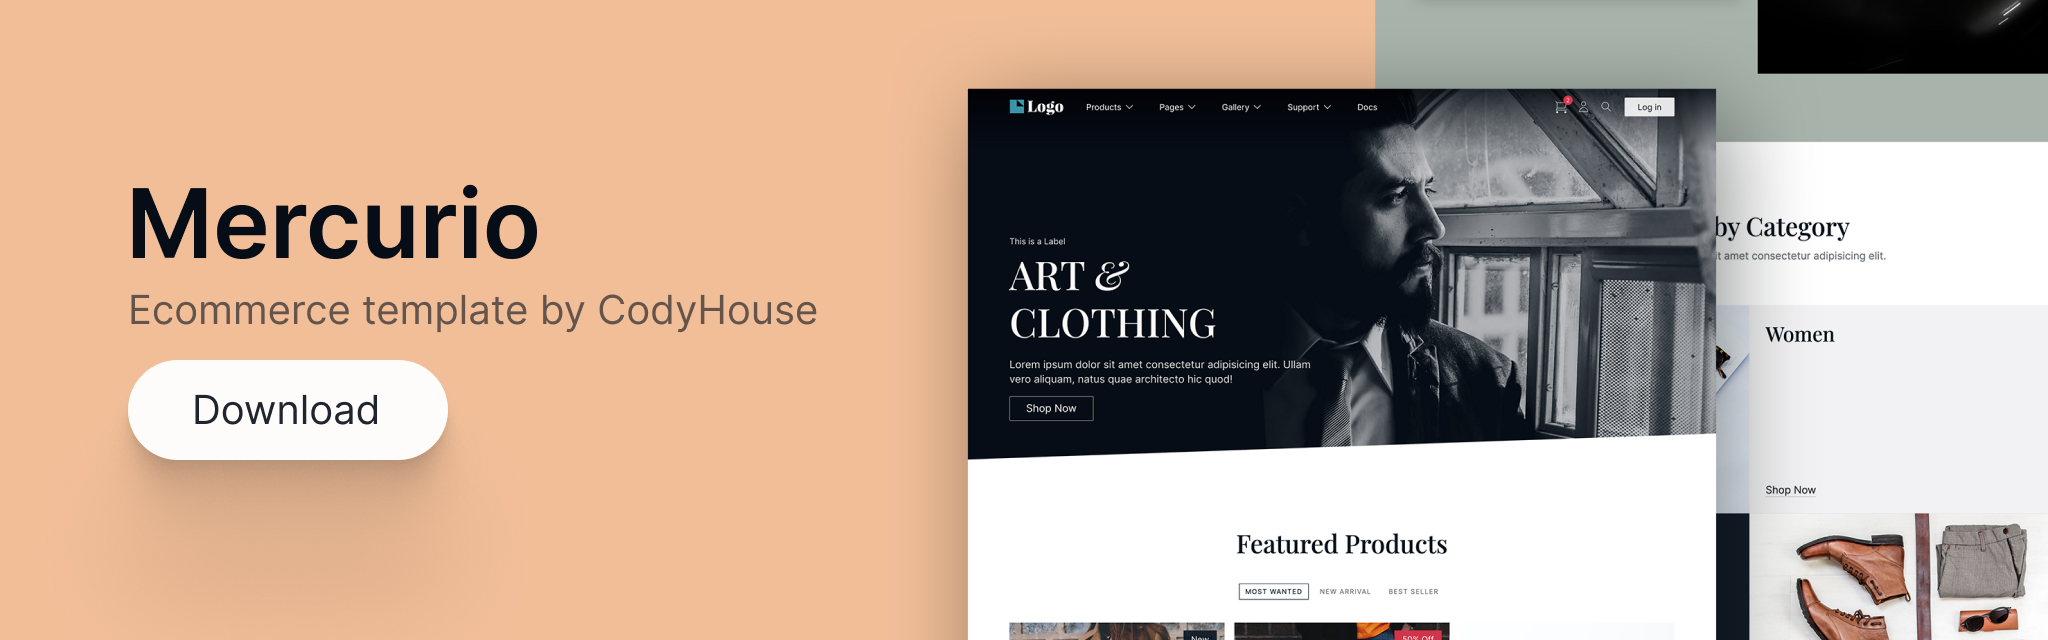 Mercurio, ecommerce template by CodyHouse